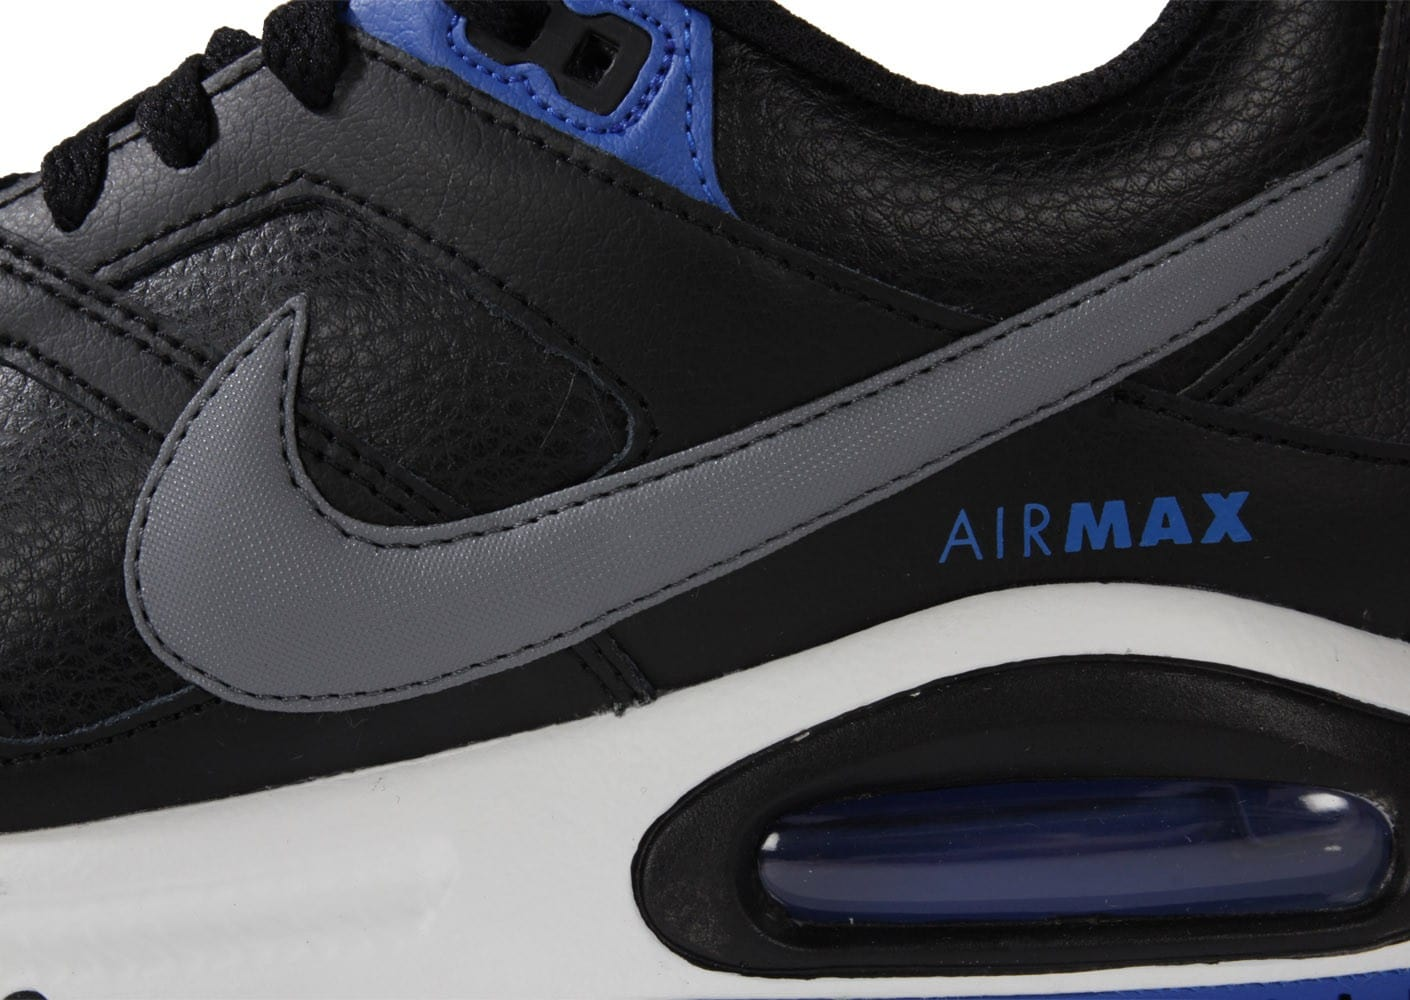 grossiste 0e2d7 442f1 Nike Air Max Command Cuir Noire - Chaussures Baskets homme ...